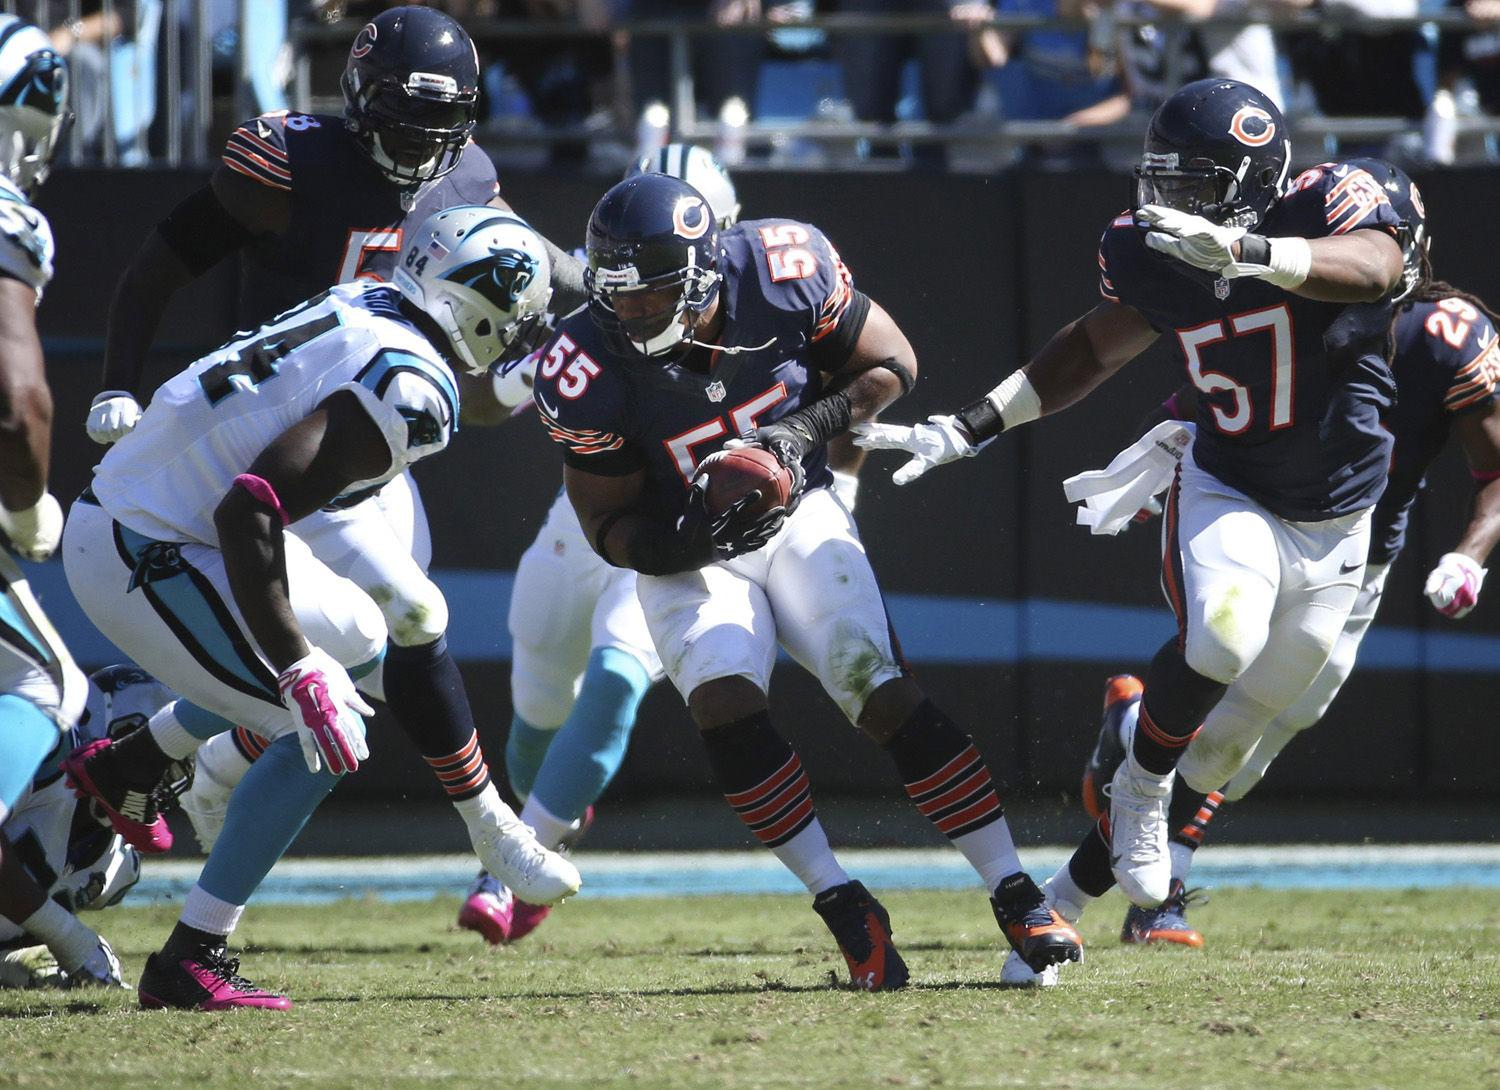 Chicago+Bears+outside+linebacker+Lance+Briggs+runs+with+his+interception+against+the+Carolina+Panthers+on+Oct.+5